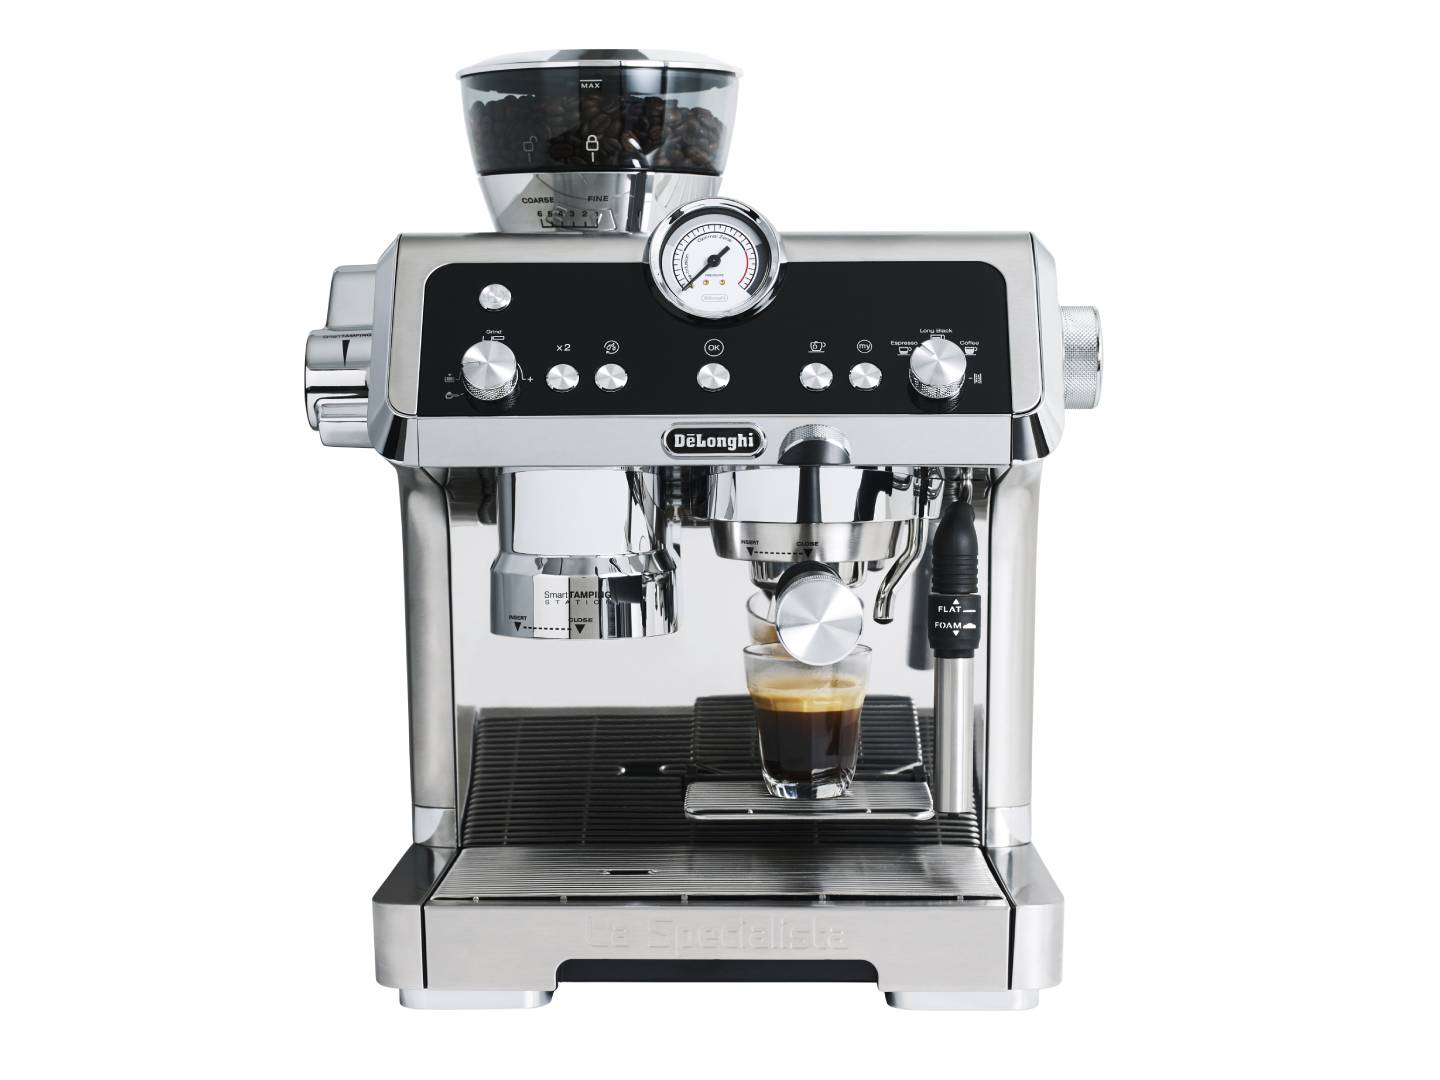 DeLonghi La Specialista Pump Espresso Coffee Machine EC9335.M